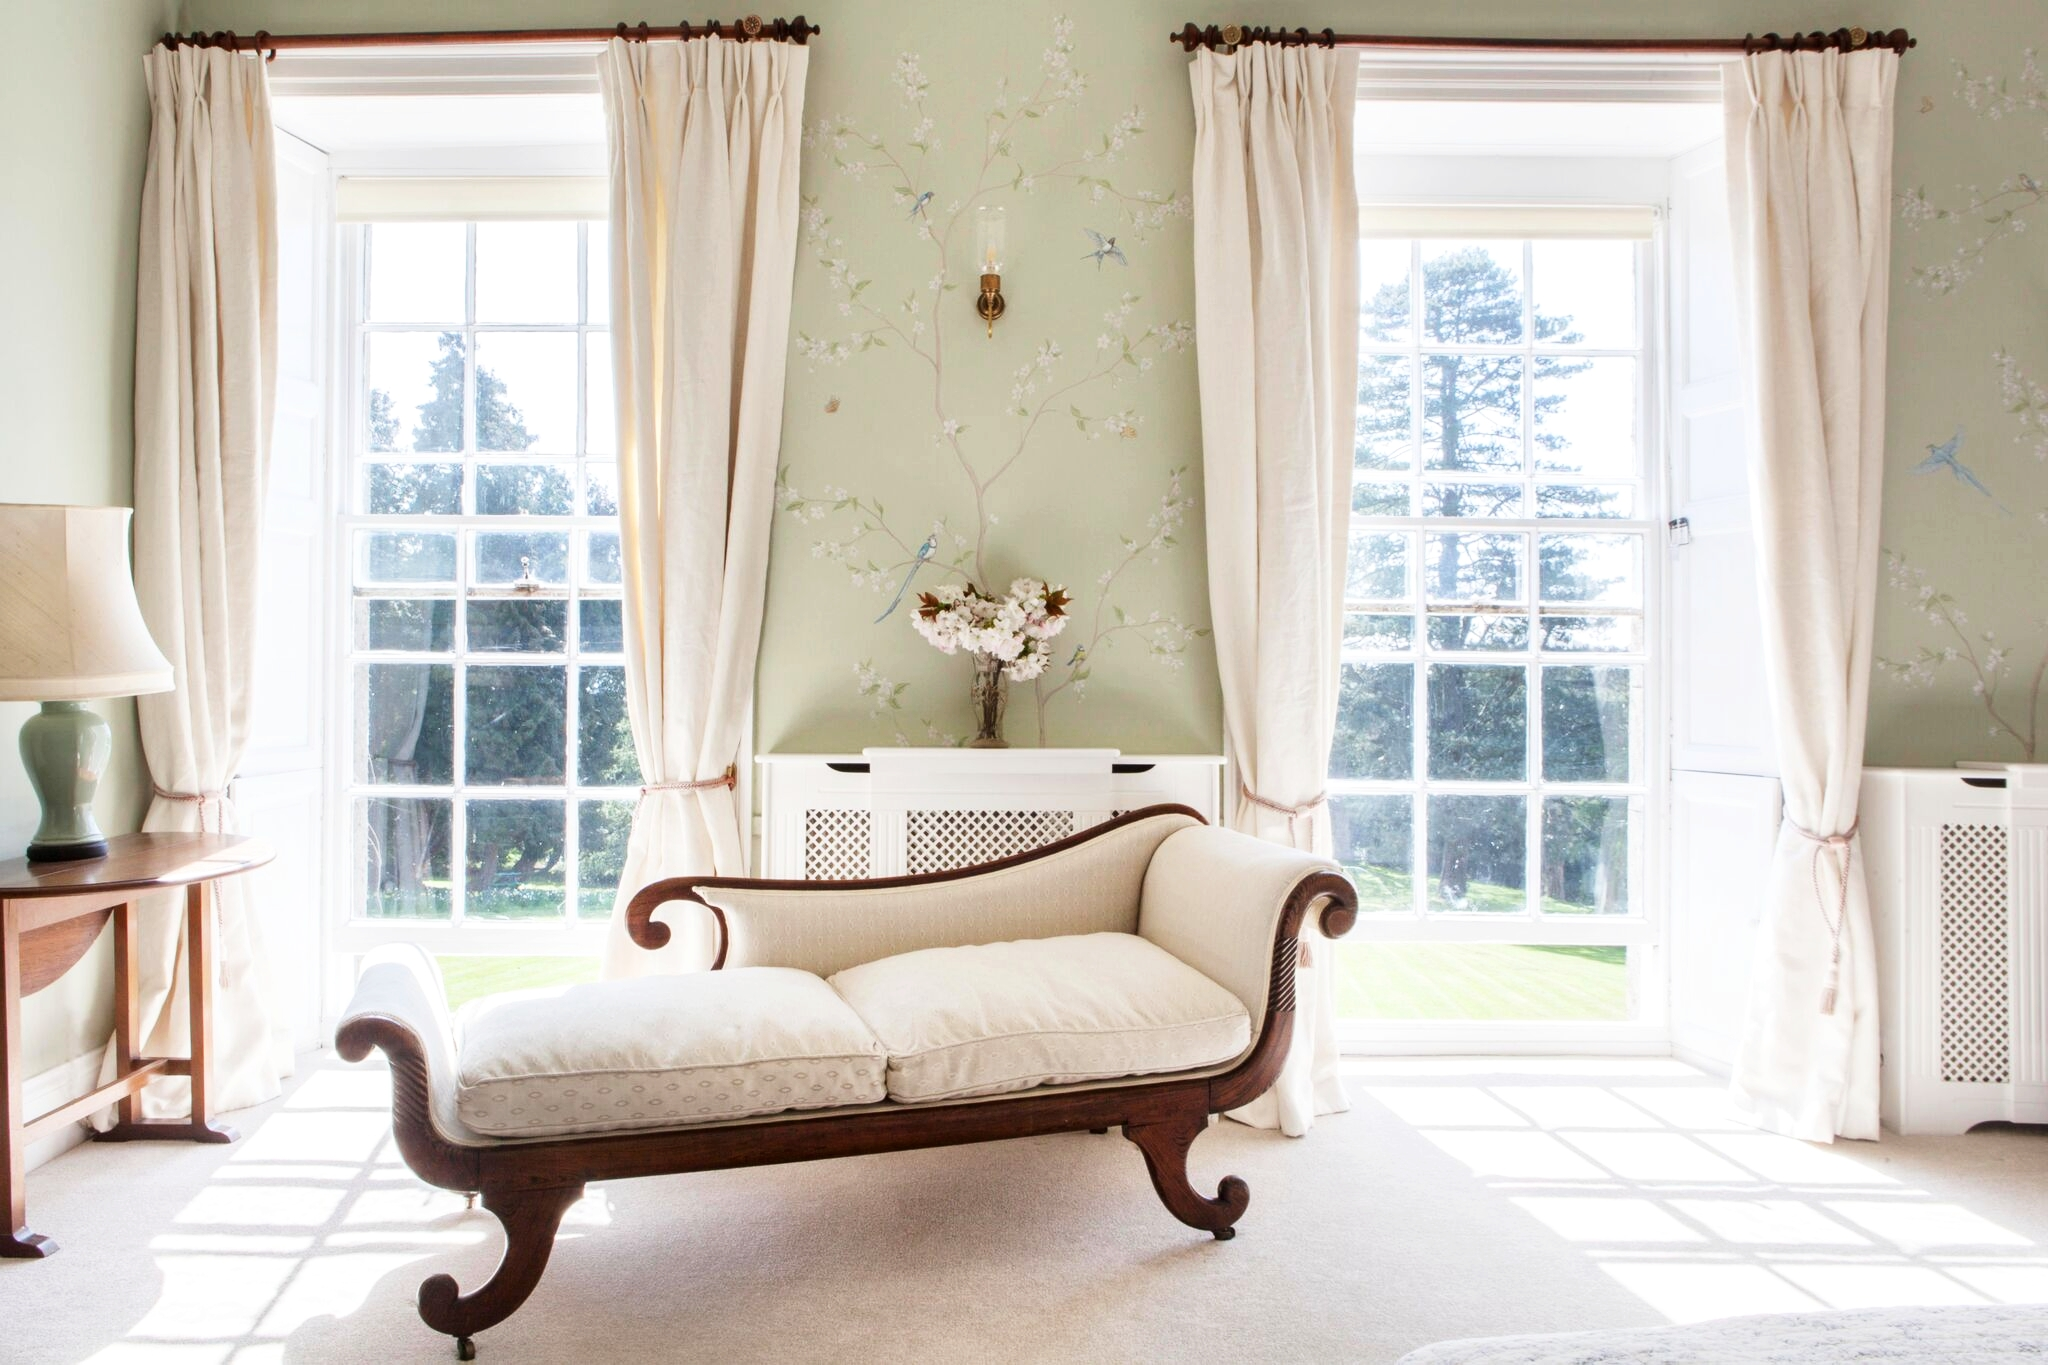 PENNARD HOUSE BRIDAL SUITE